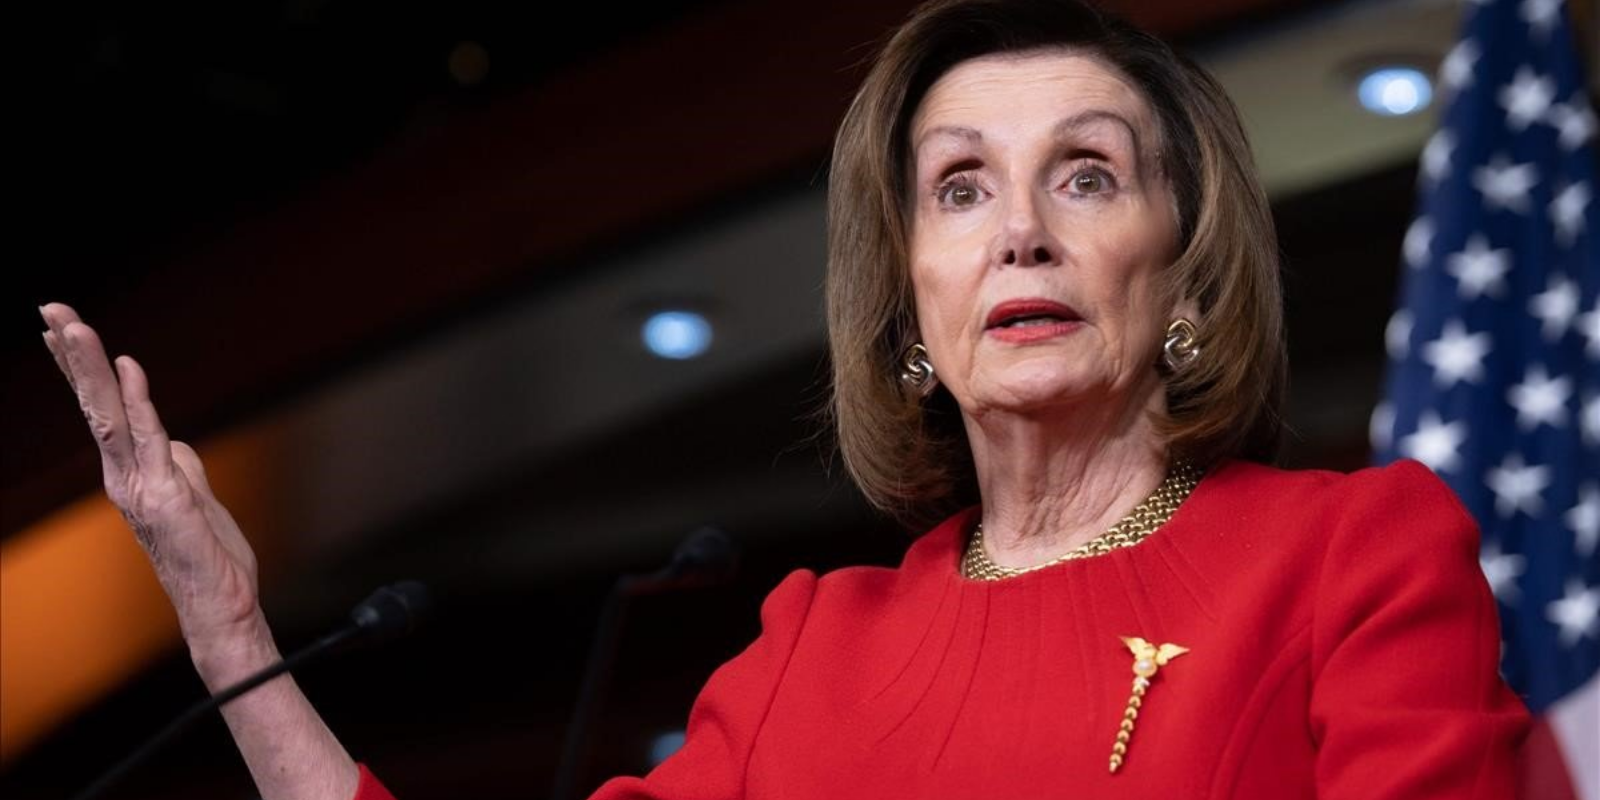 BREAKING: Pelosi to create her own commission to investigate Jan 6 Capitol riot